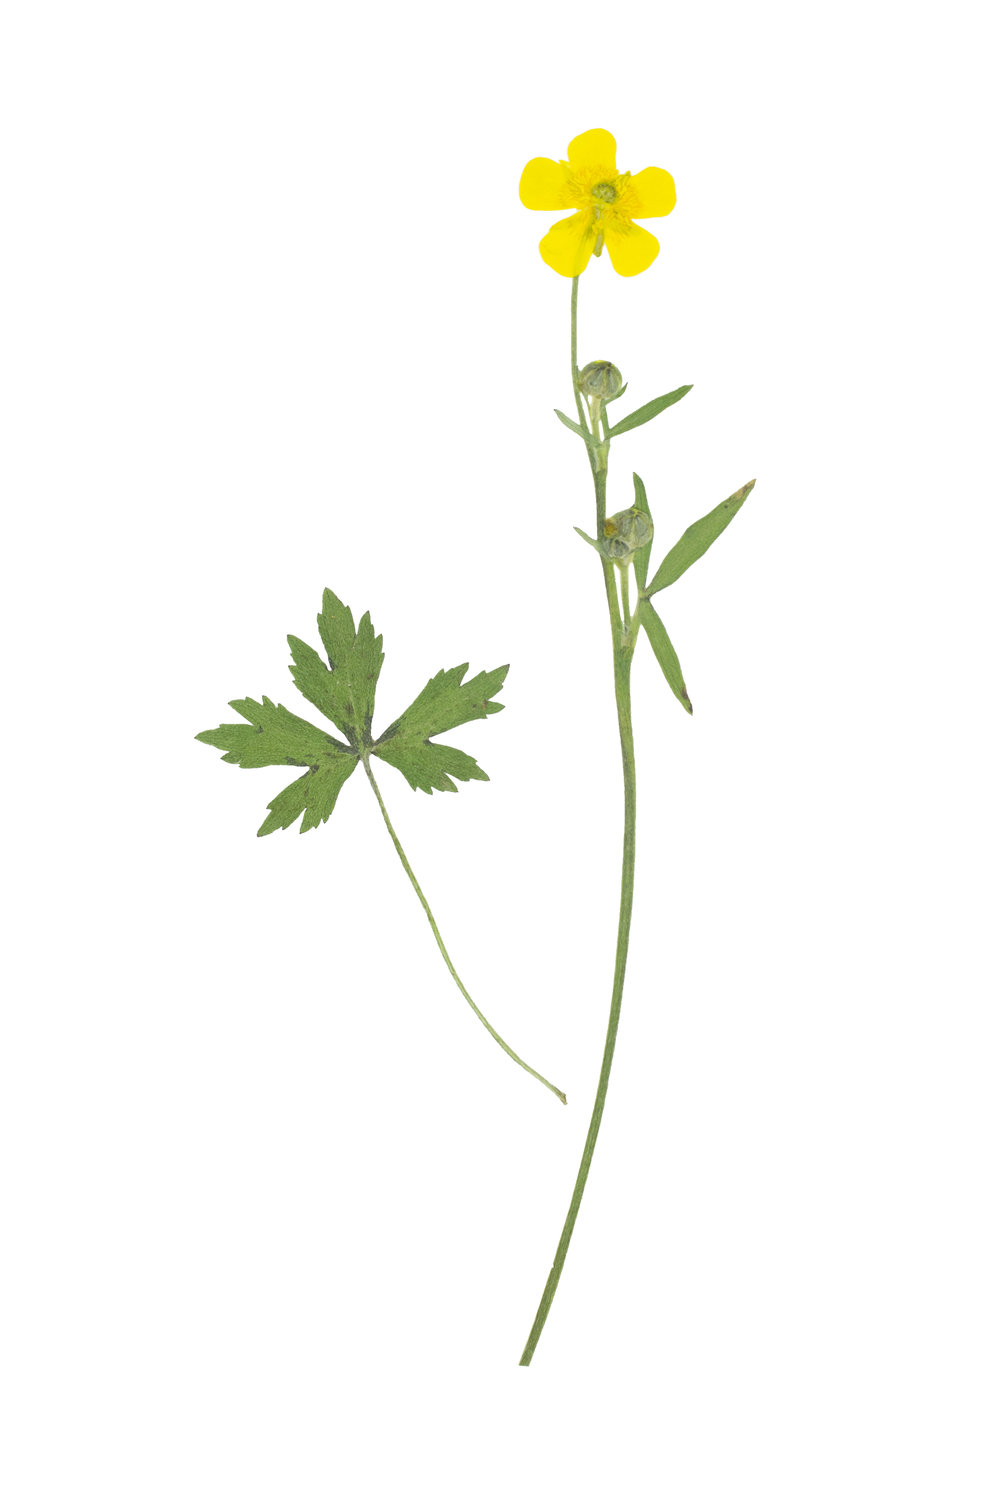 Ranunculus acris friesianus / Meadow Buttercup